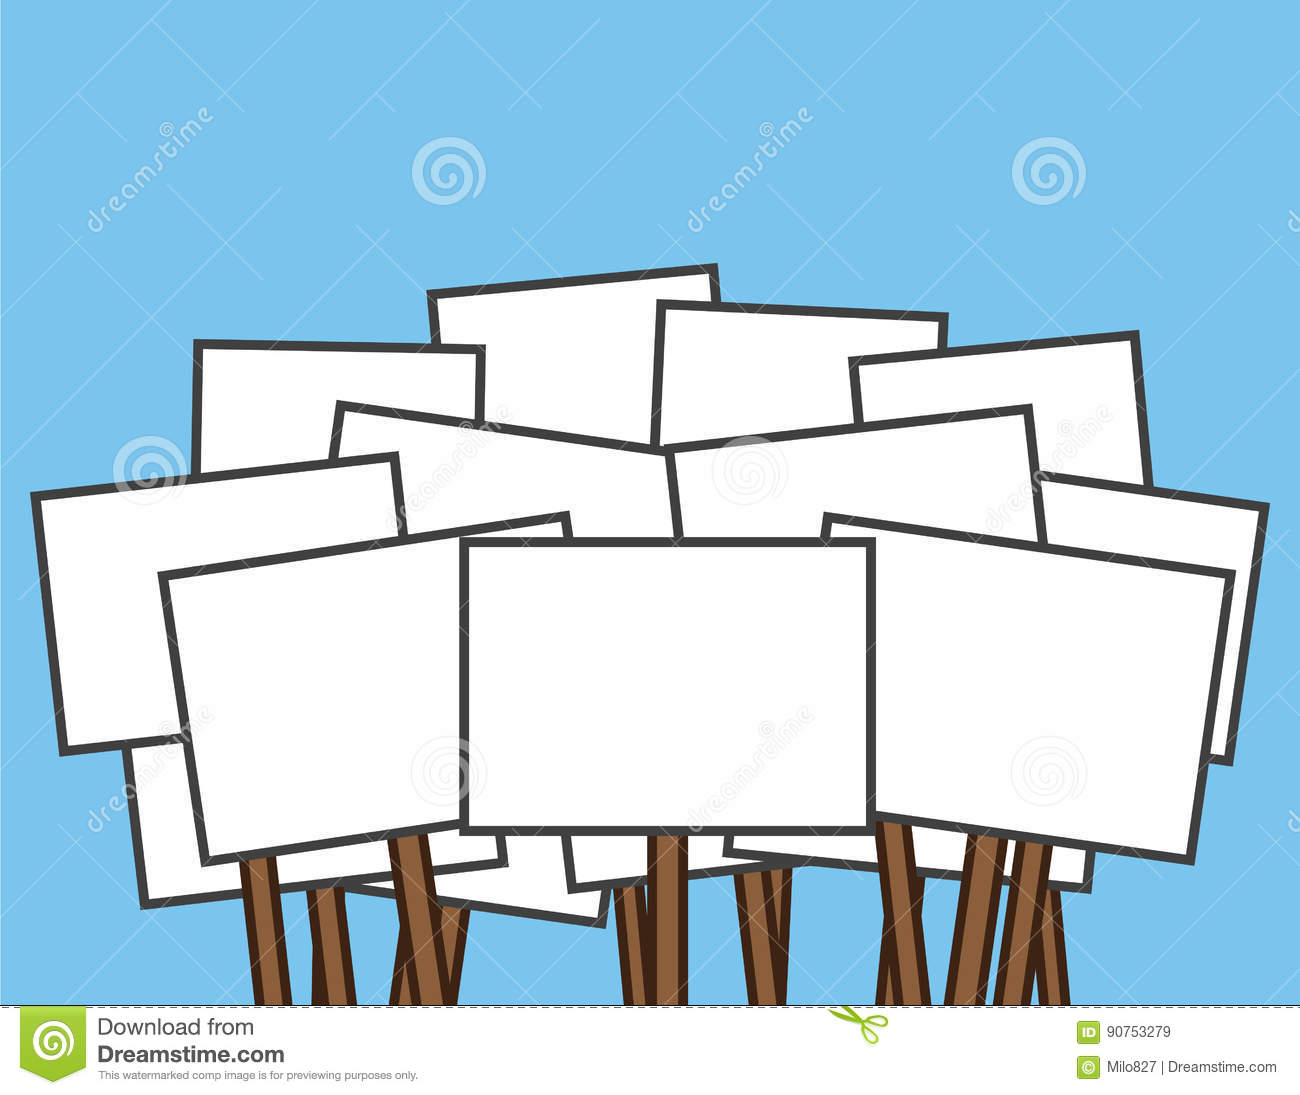 Protest sign clipart banner black and white stock Protest sign clipart 3 » Clipart Station banner black and white stock